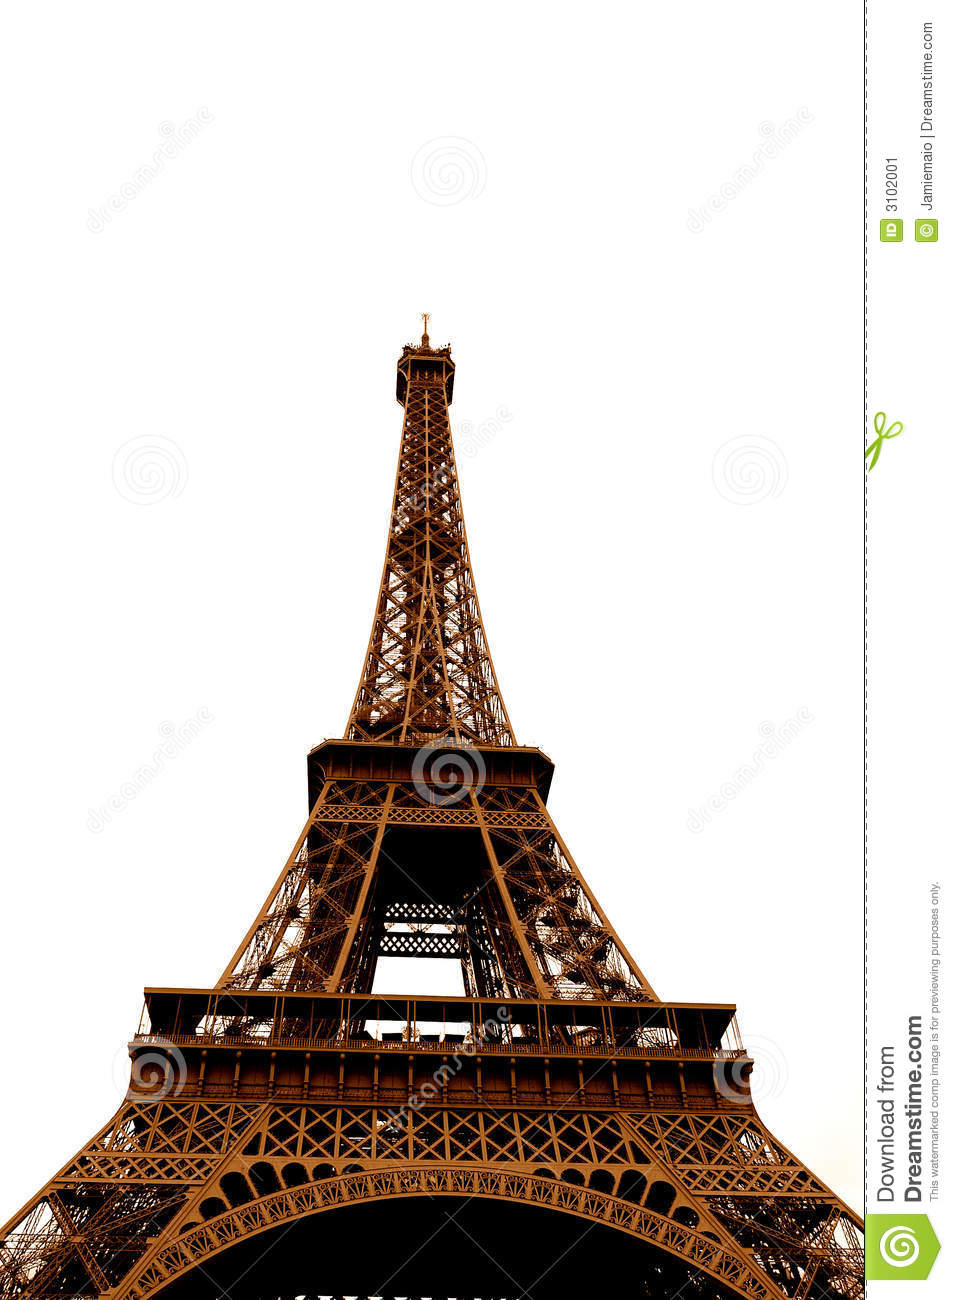 Uncategorized Eiffel Tower Pictures To Color eiffel tower in single color stock image 3102001 royalty free photo download color